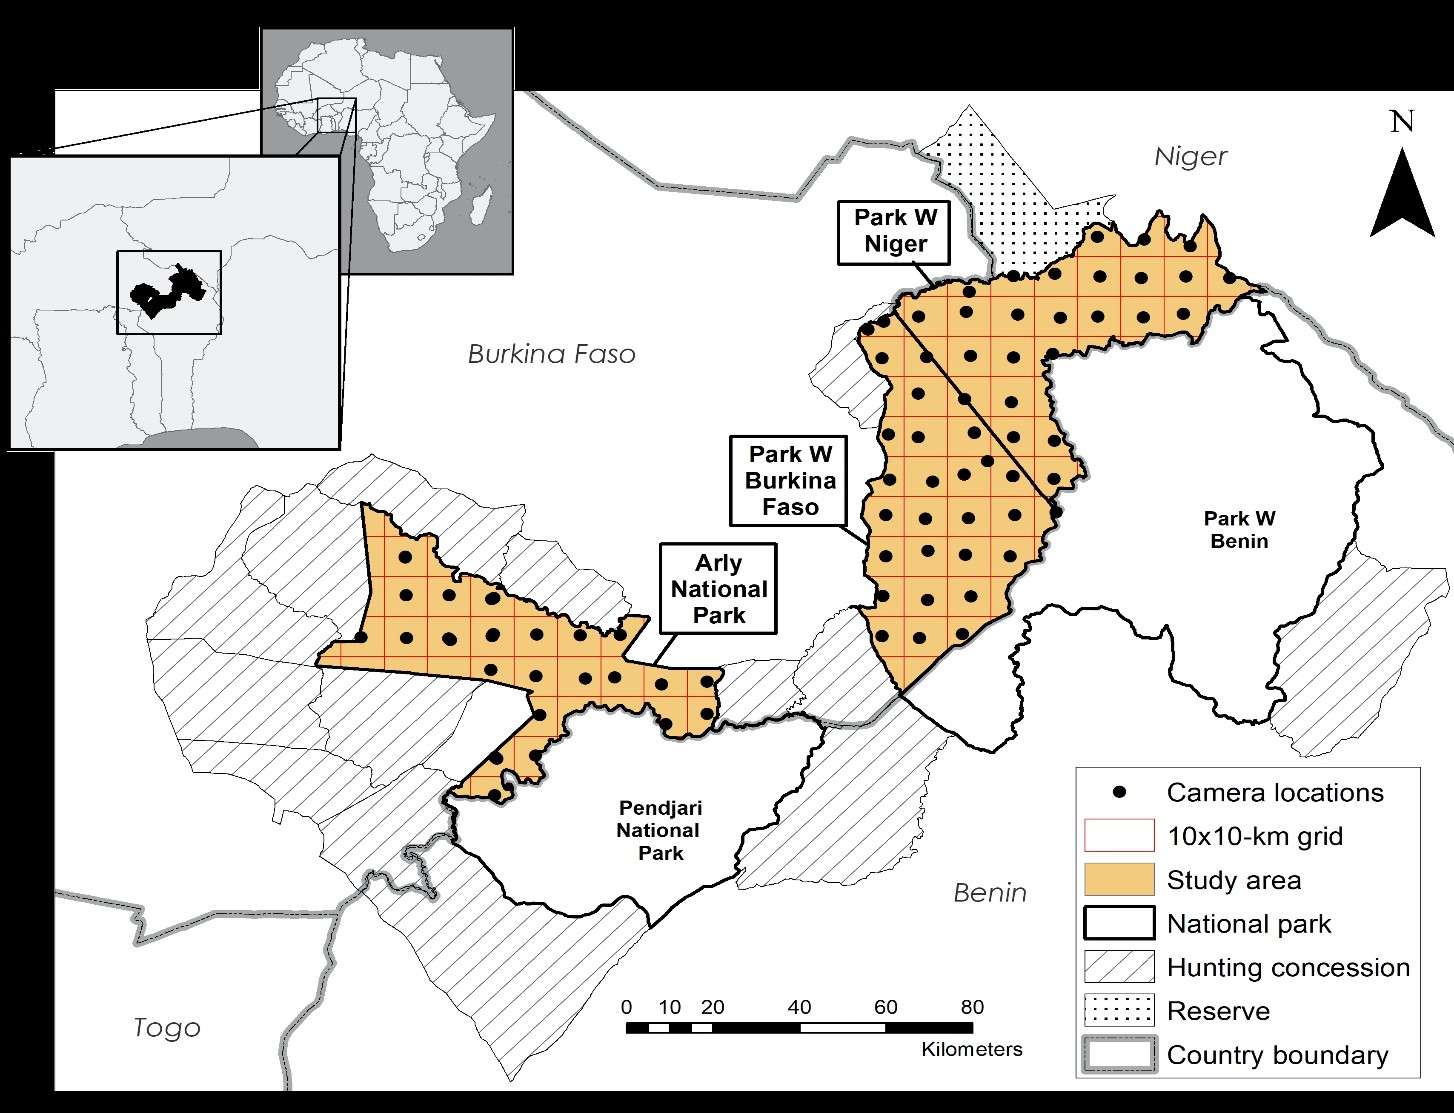 Map showing the location of a University of Michigan-led camera survey of West African wildlife in three national parks: Arly National Park, Park W Niger and Park W Burkina Faso. The parks are part of the largest protected-area complex in West Africa, the W-Arly-Pendjari, or WAP. Image credit: U-M Applied Wildlife Ecology Lab